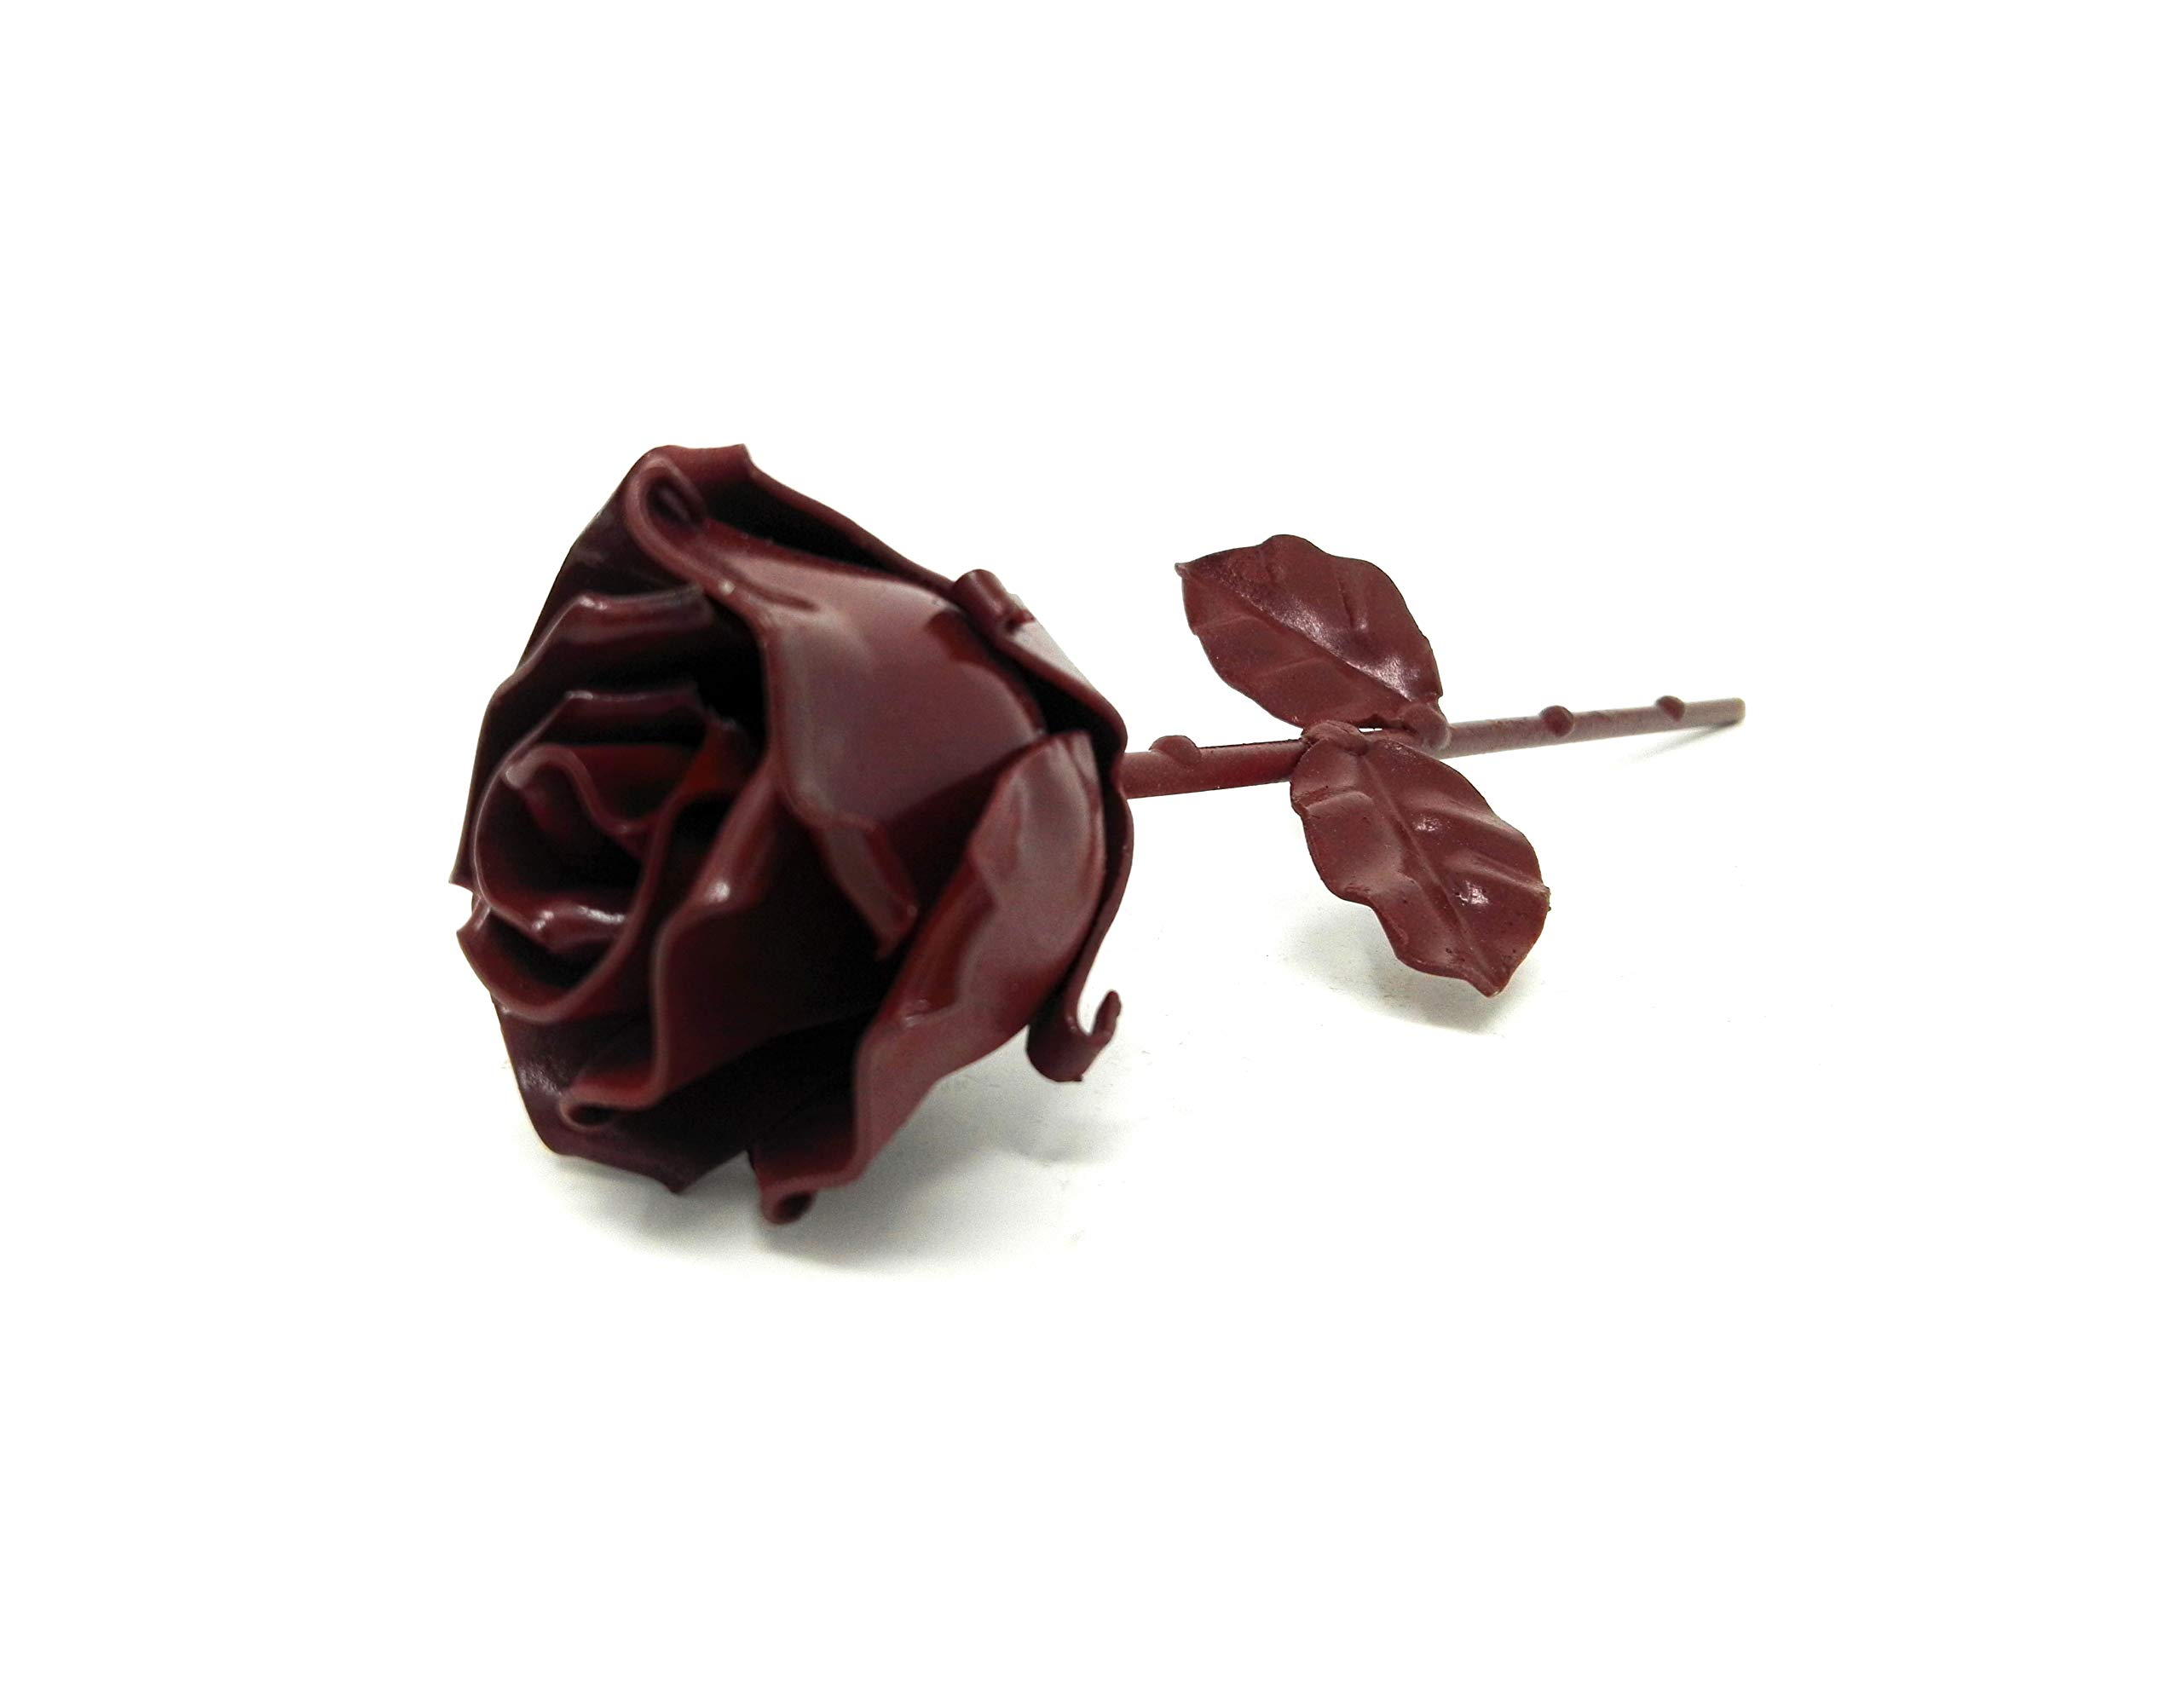 -Eternal-Rose-Hand-Forged-Wrought-Iron-RedIdeal-gift-Valentines-Day-Girlfriend-Mothers-Day-Couple-Birthday-Christmas-Wedding-Day-Anniversary-Gift-Decor-Indoor